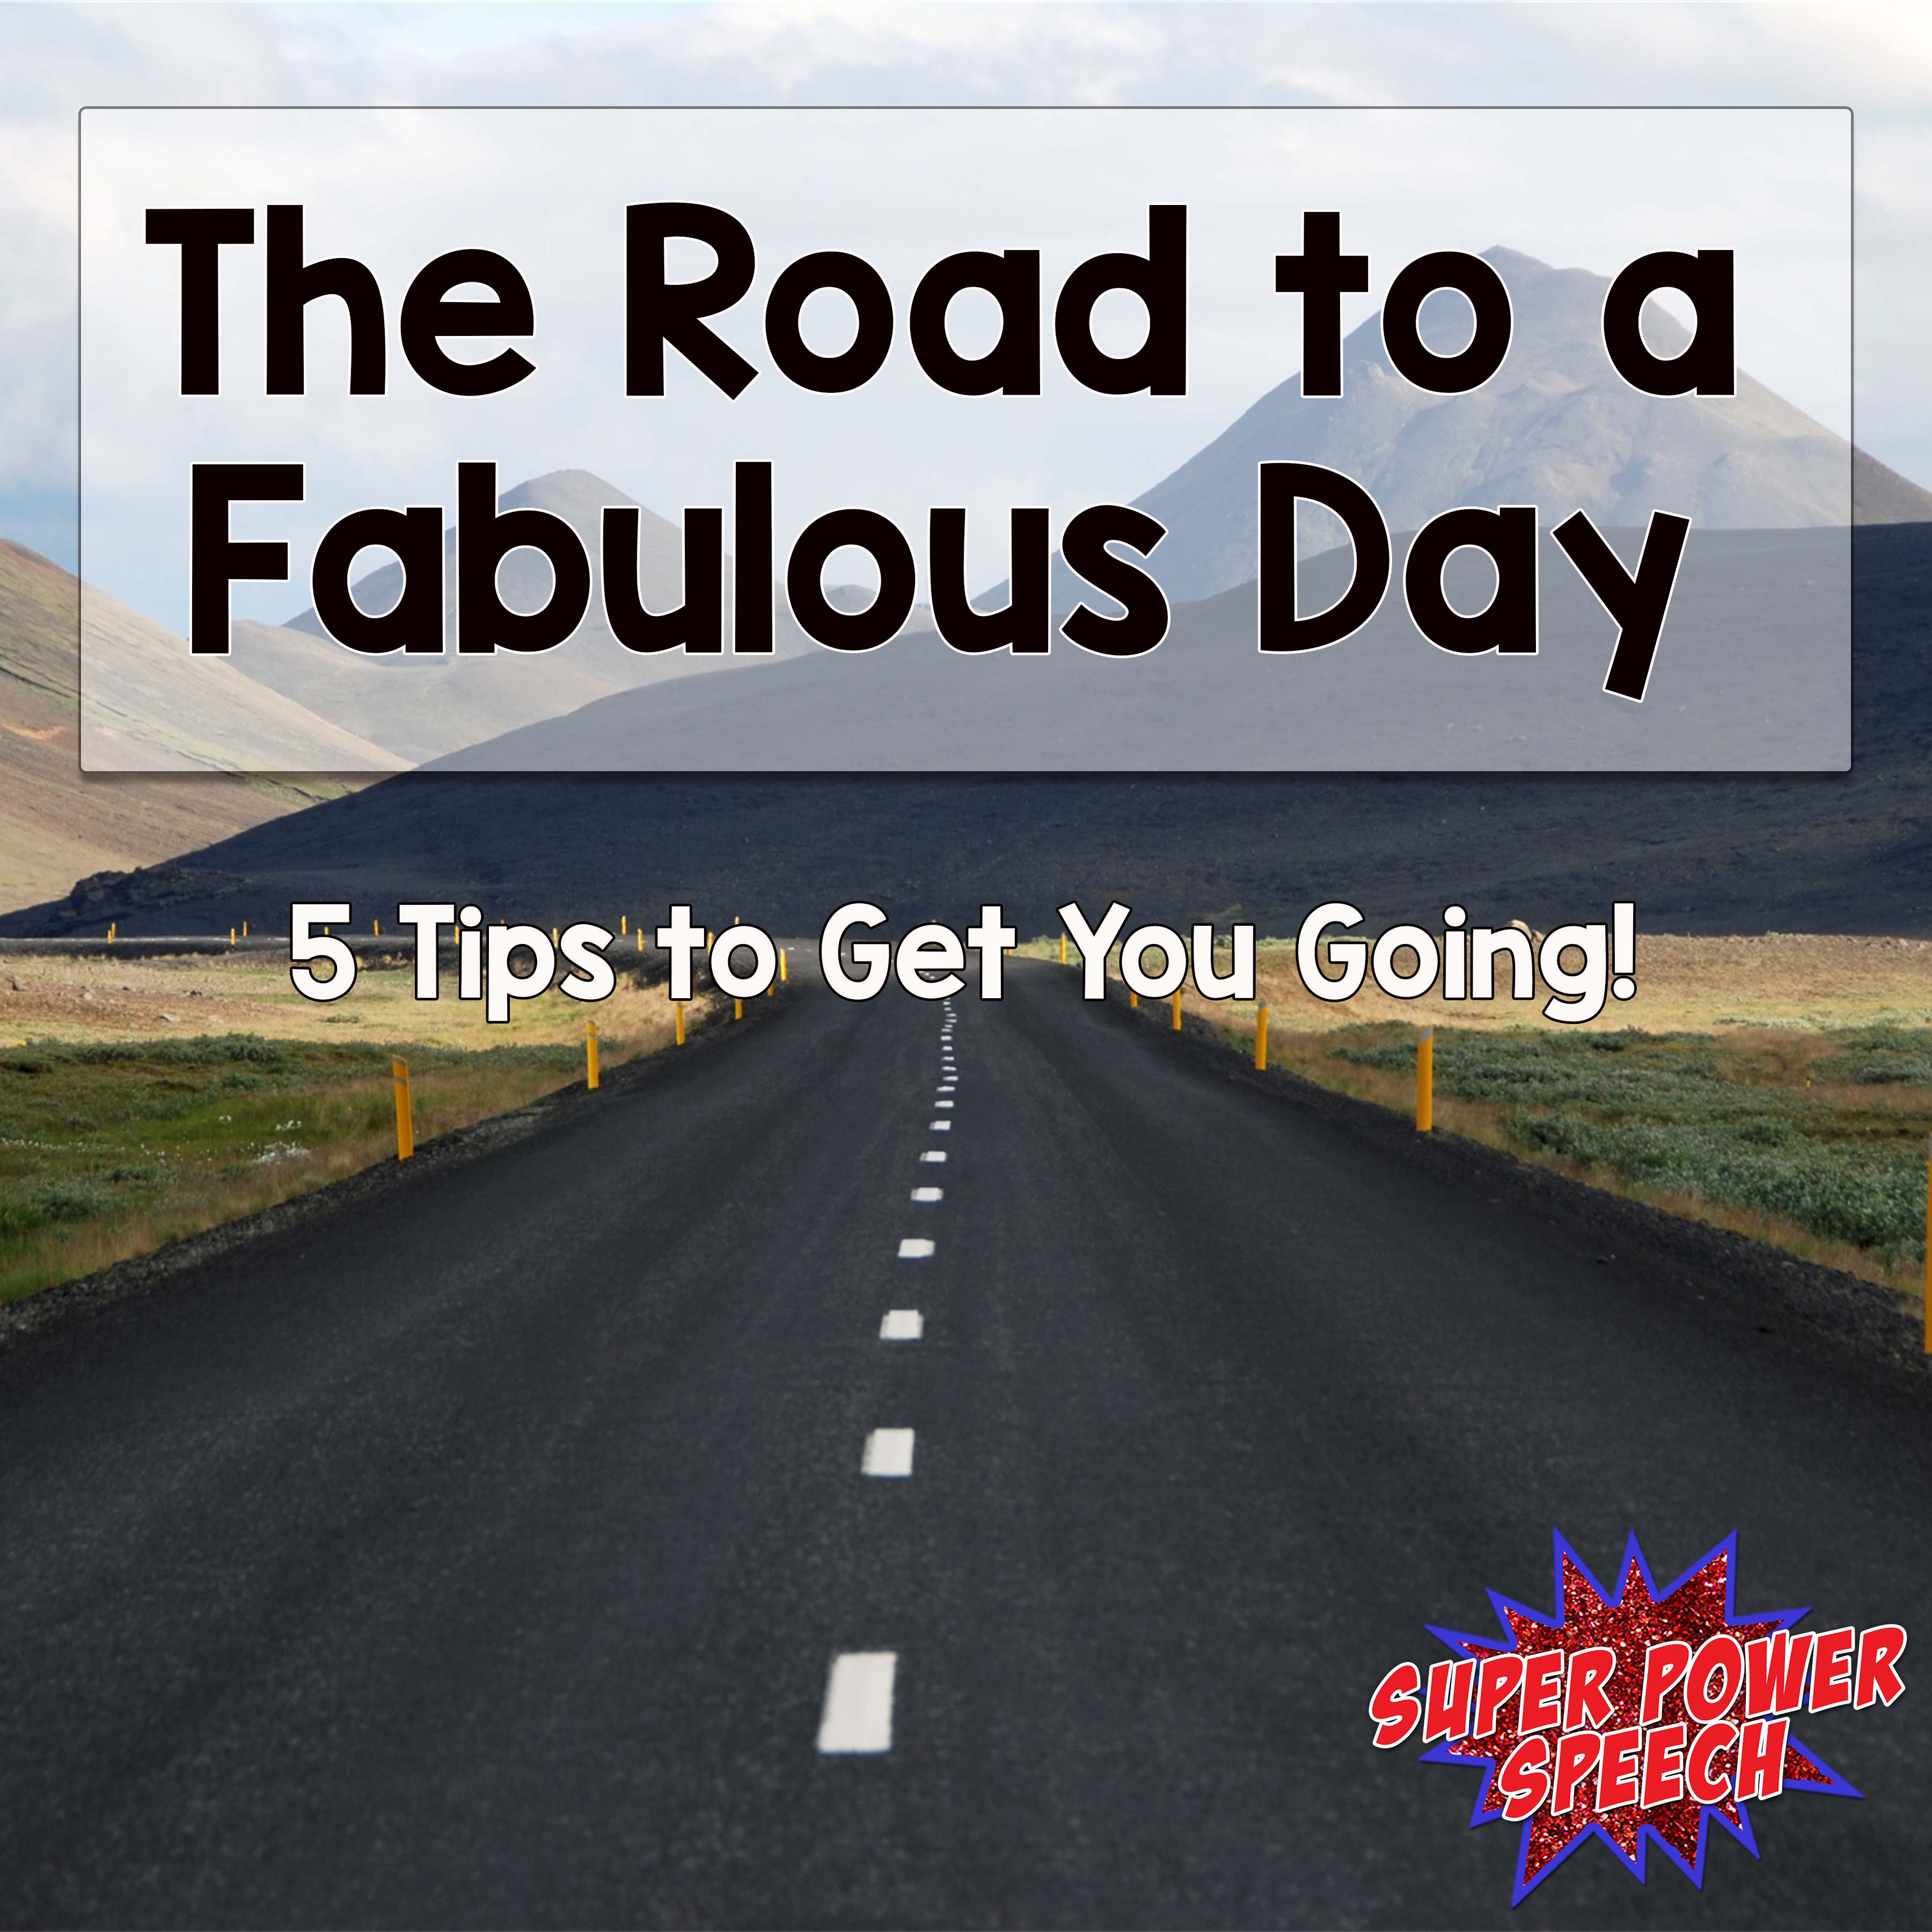 The Road to a Fabulous Day